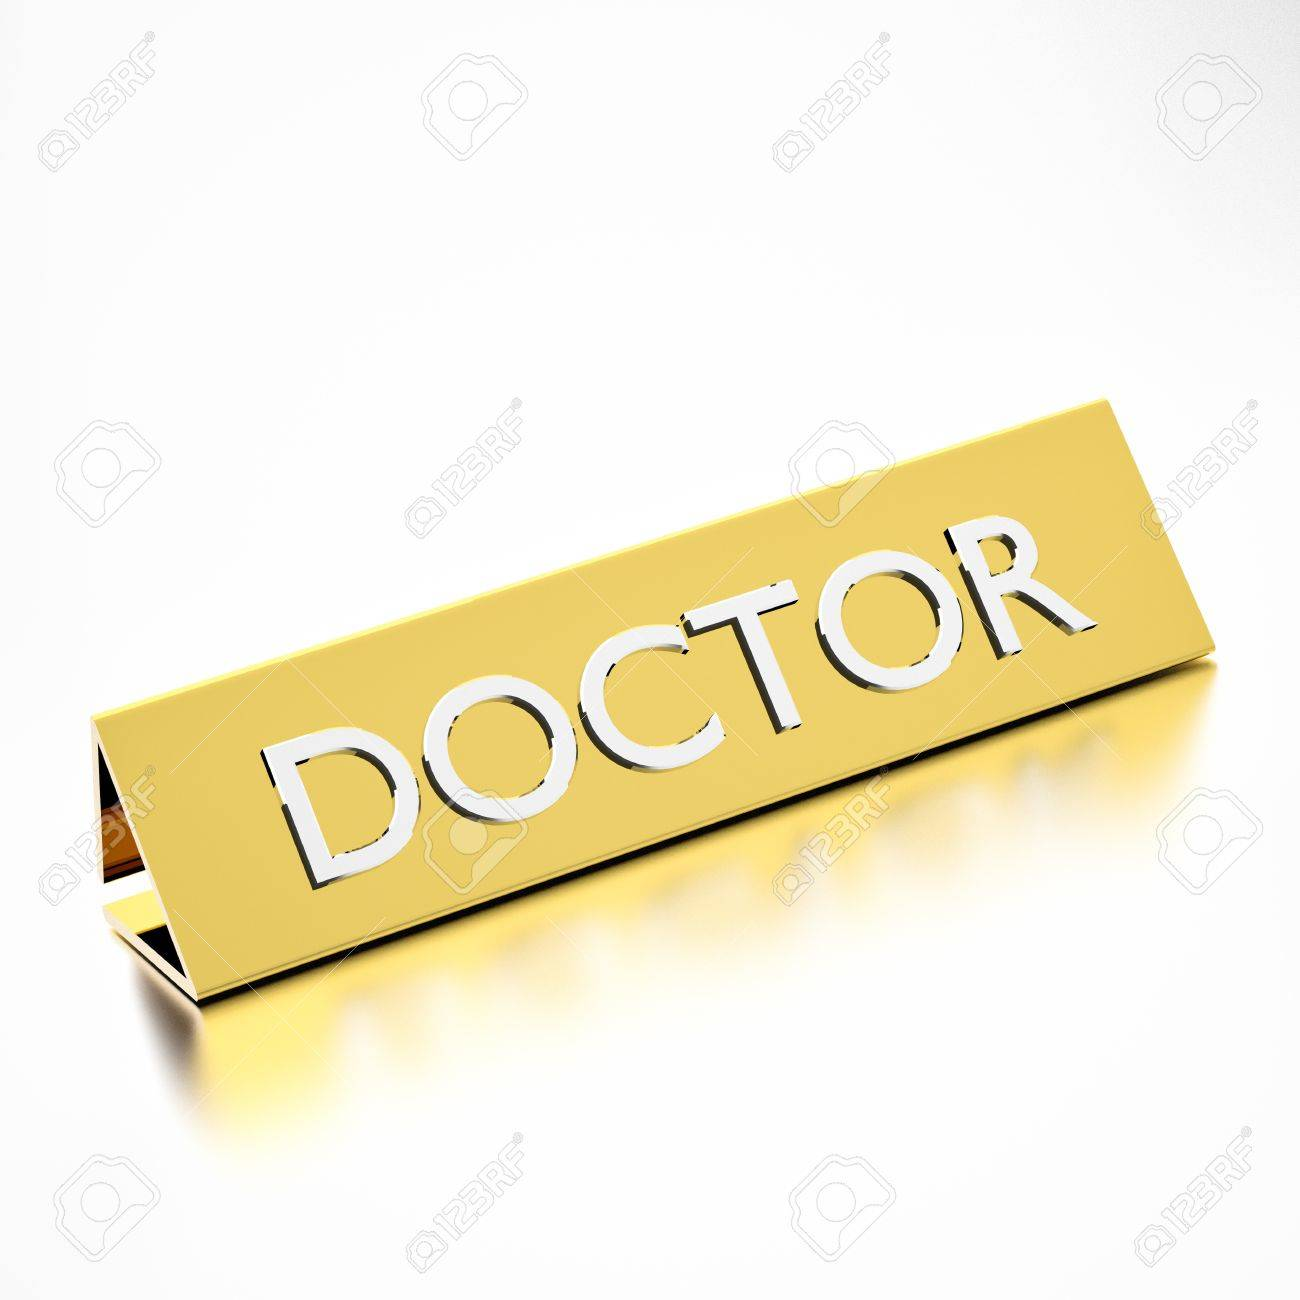 doctor job title on plate for career professions d render doctor job title on plate for career professions 3d render stock photo